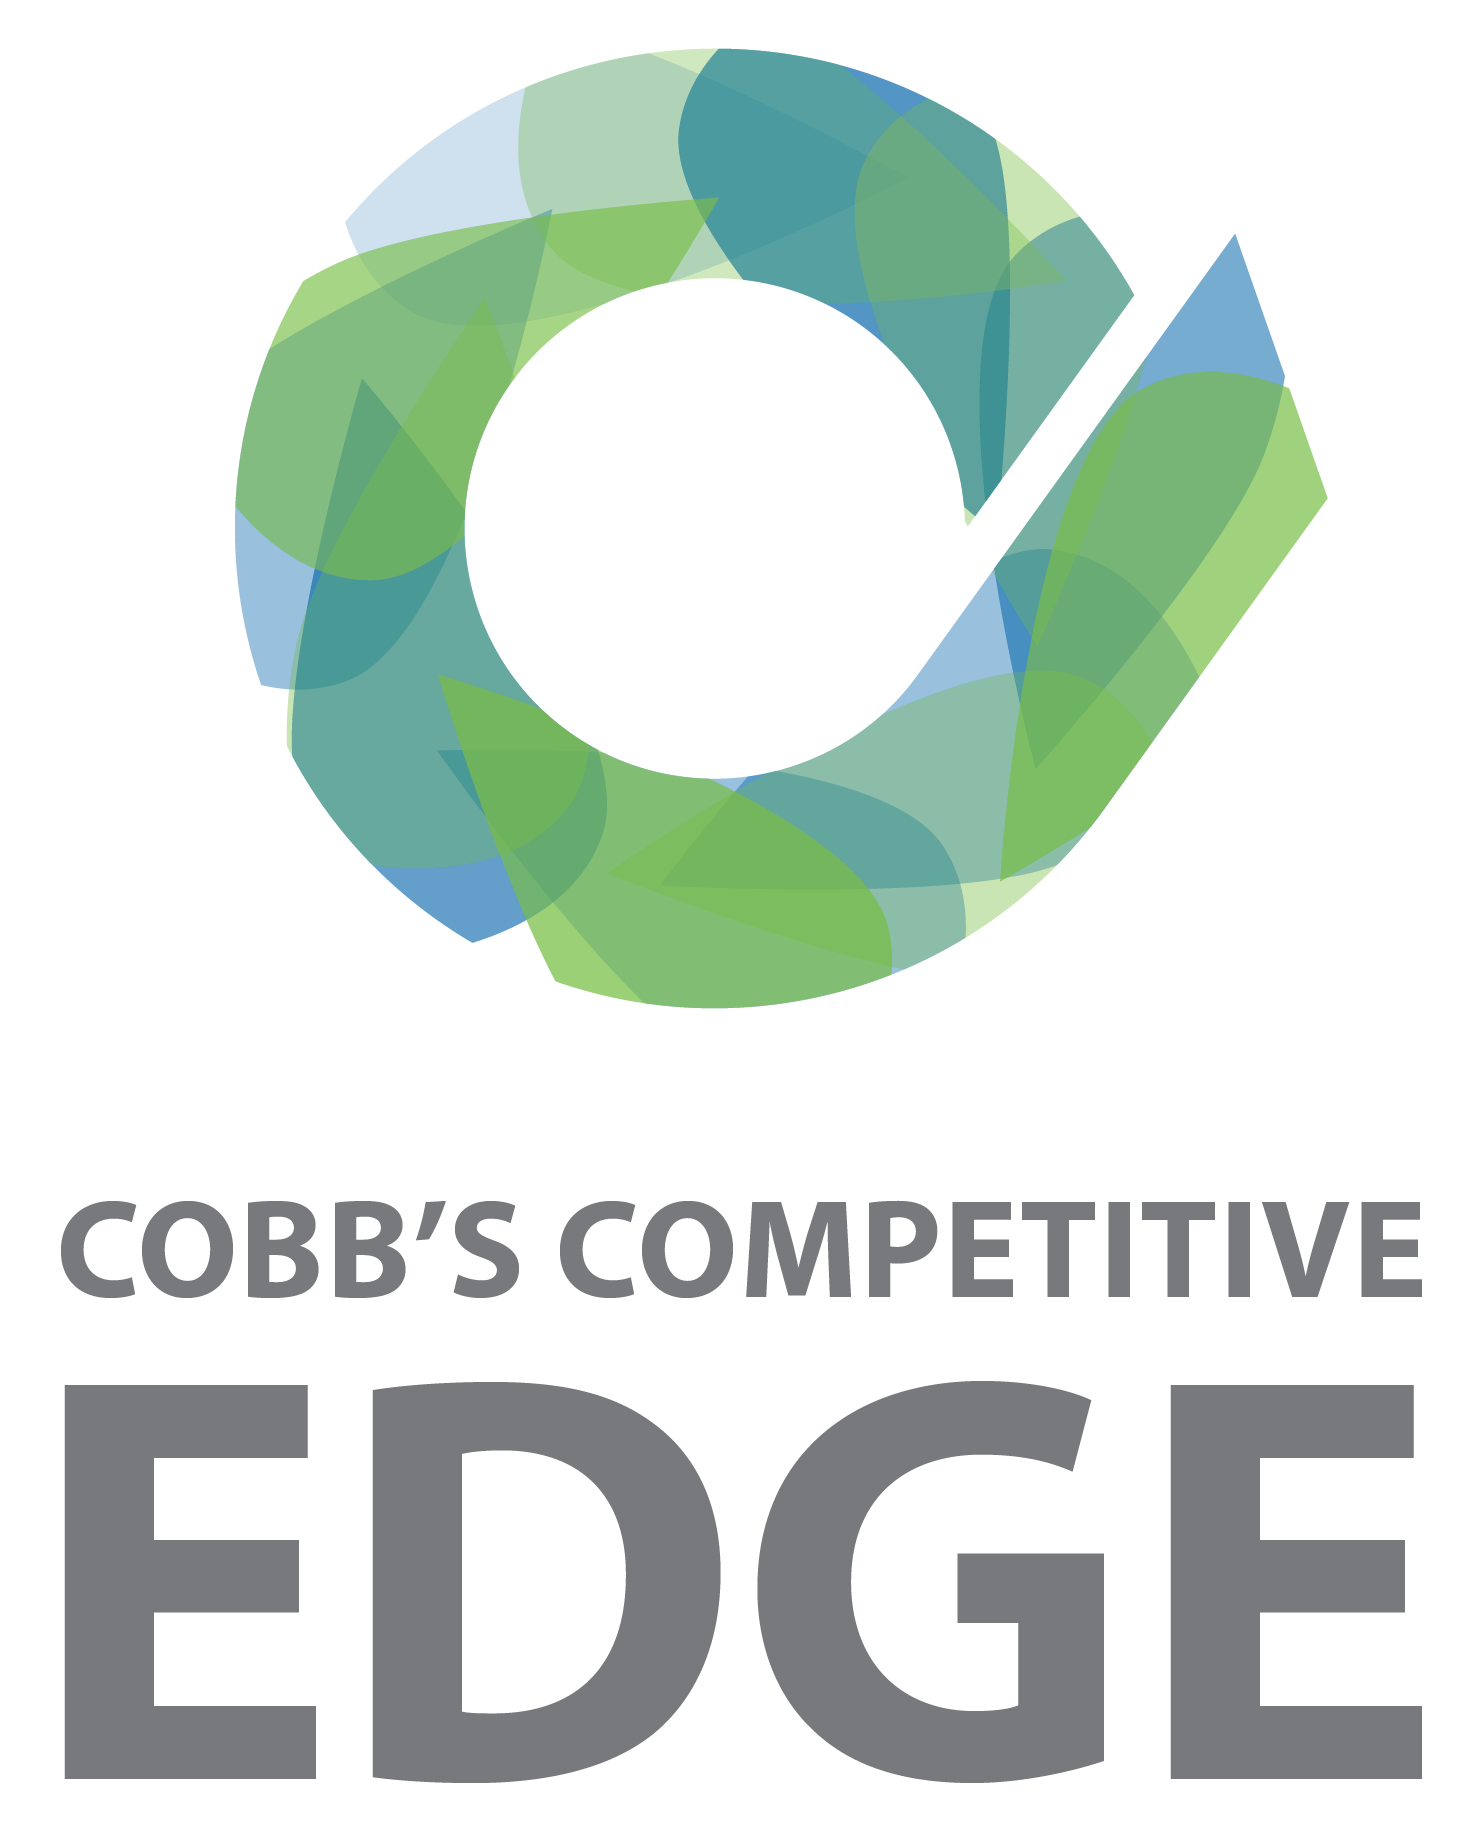 Cobb's Competitive Edge